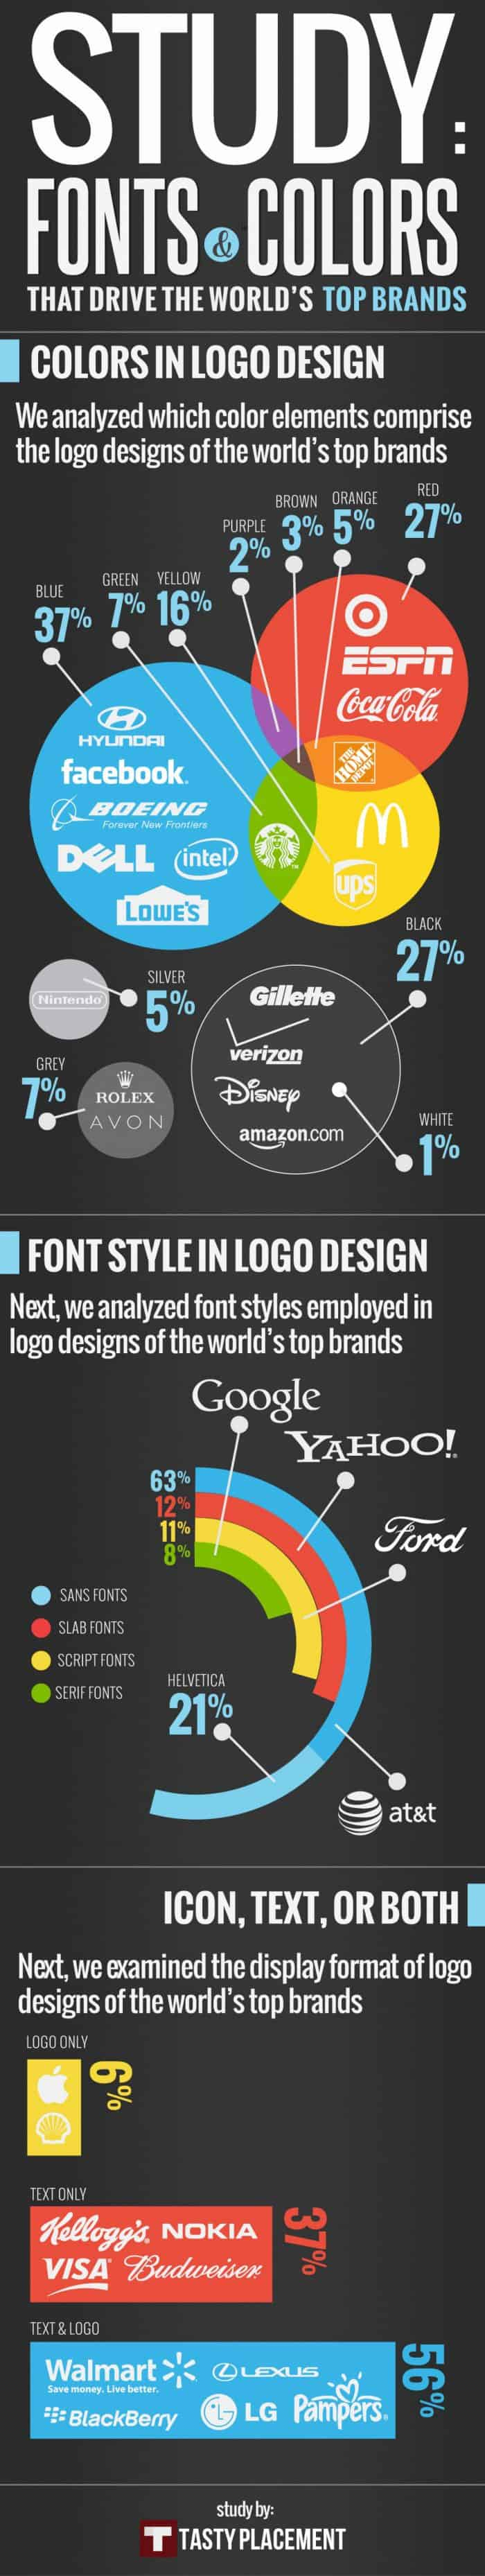 The Fonts And Colors Behind the World's Top Brands